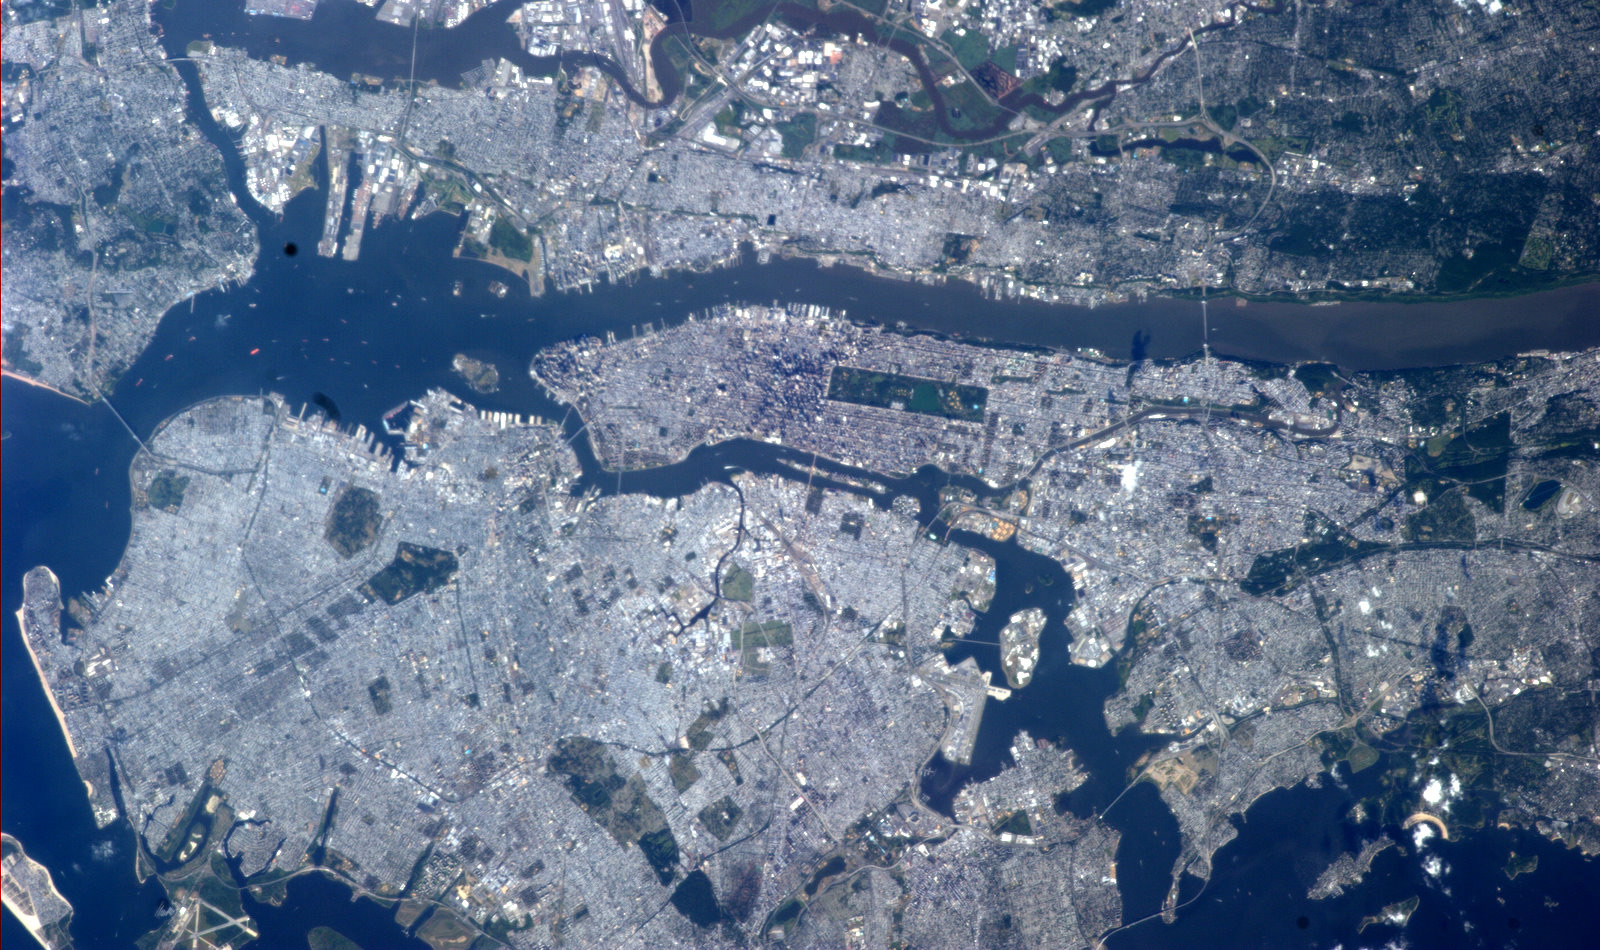 Astronauts Spy Beautiful Summer Day in NYC